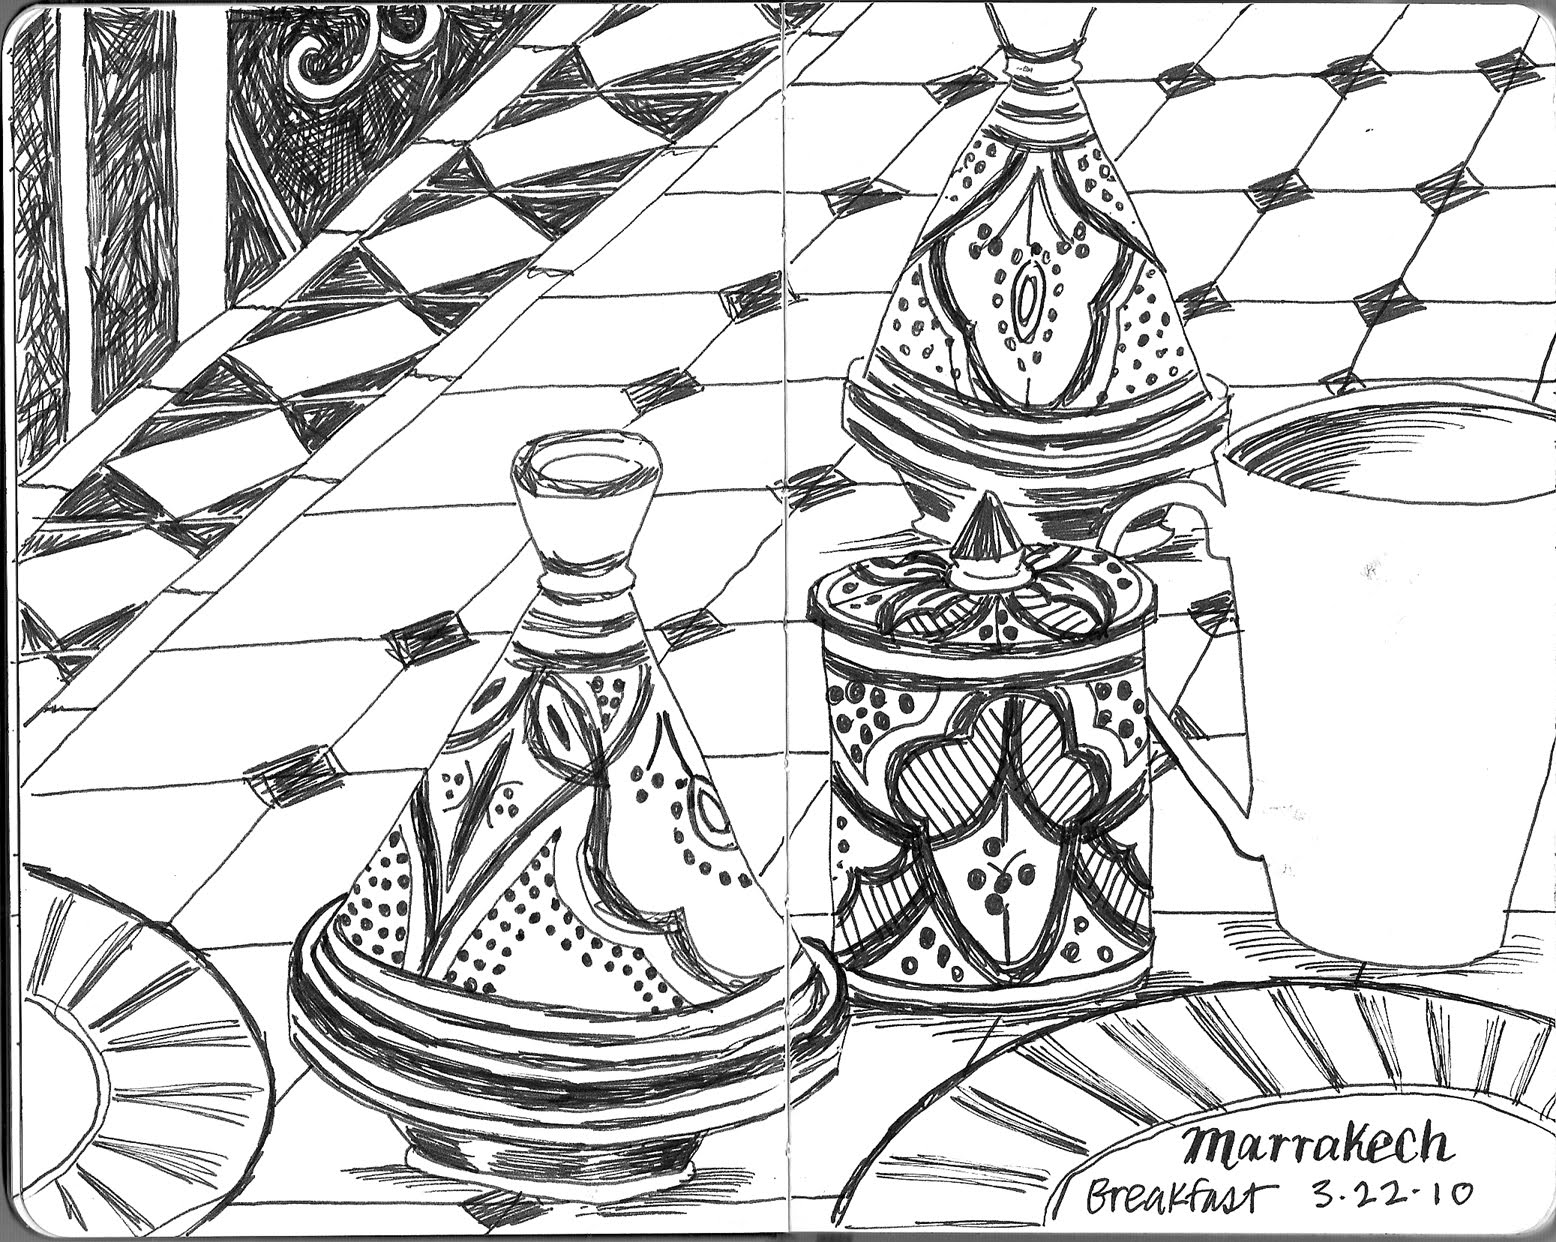 spirit of drawing march 2010 drawings from marrakech